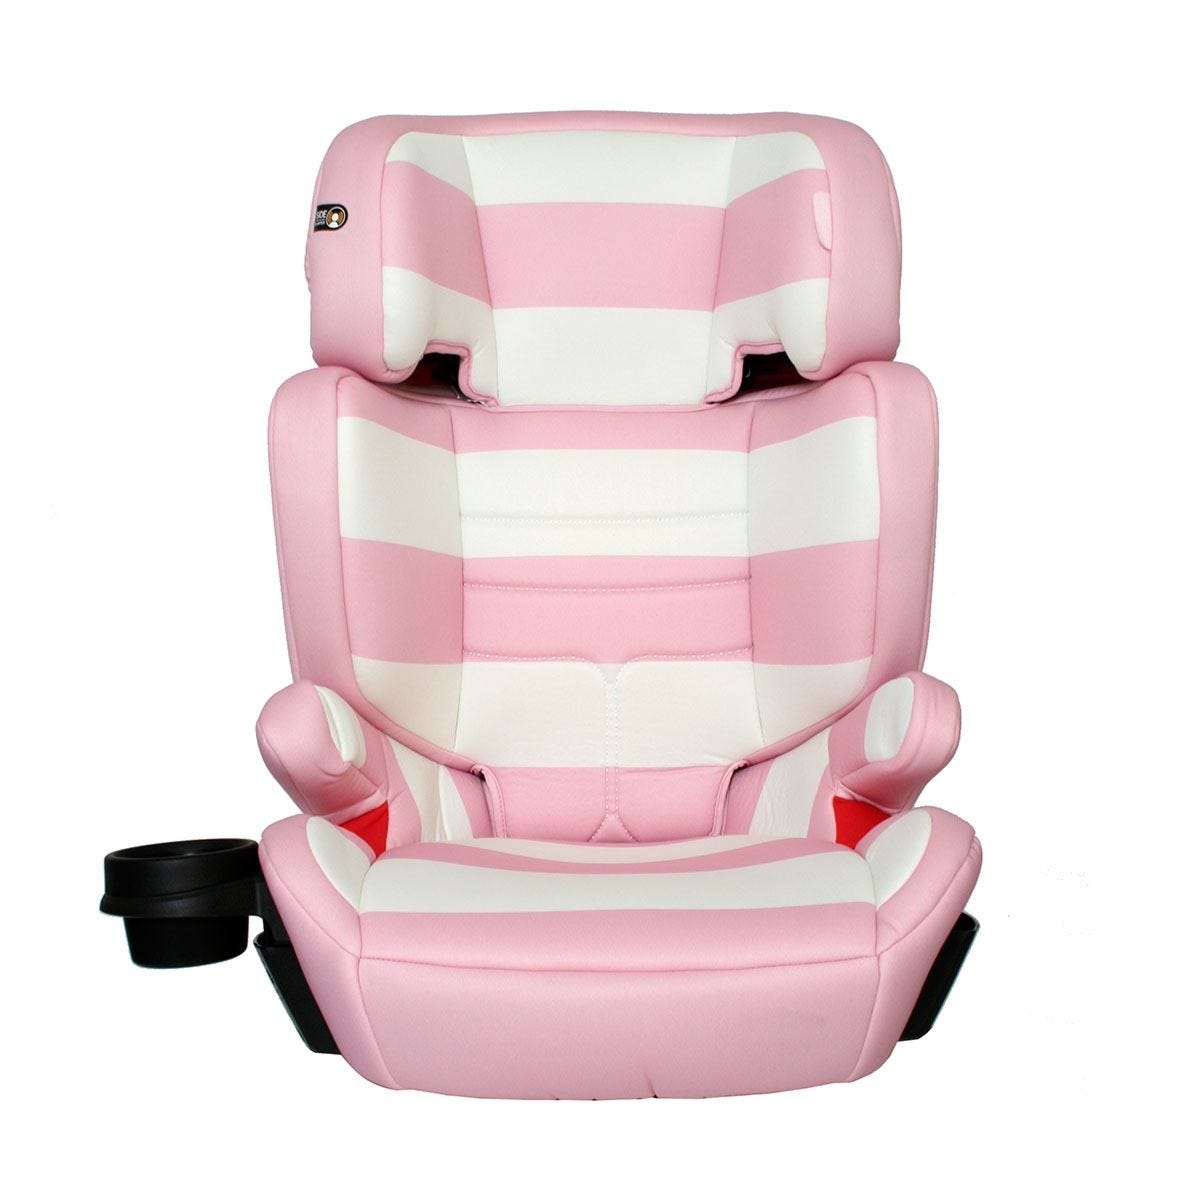 My Babiie Group 2 3 Car Seat - Pink Stripes